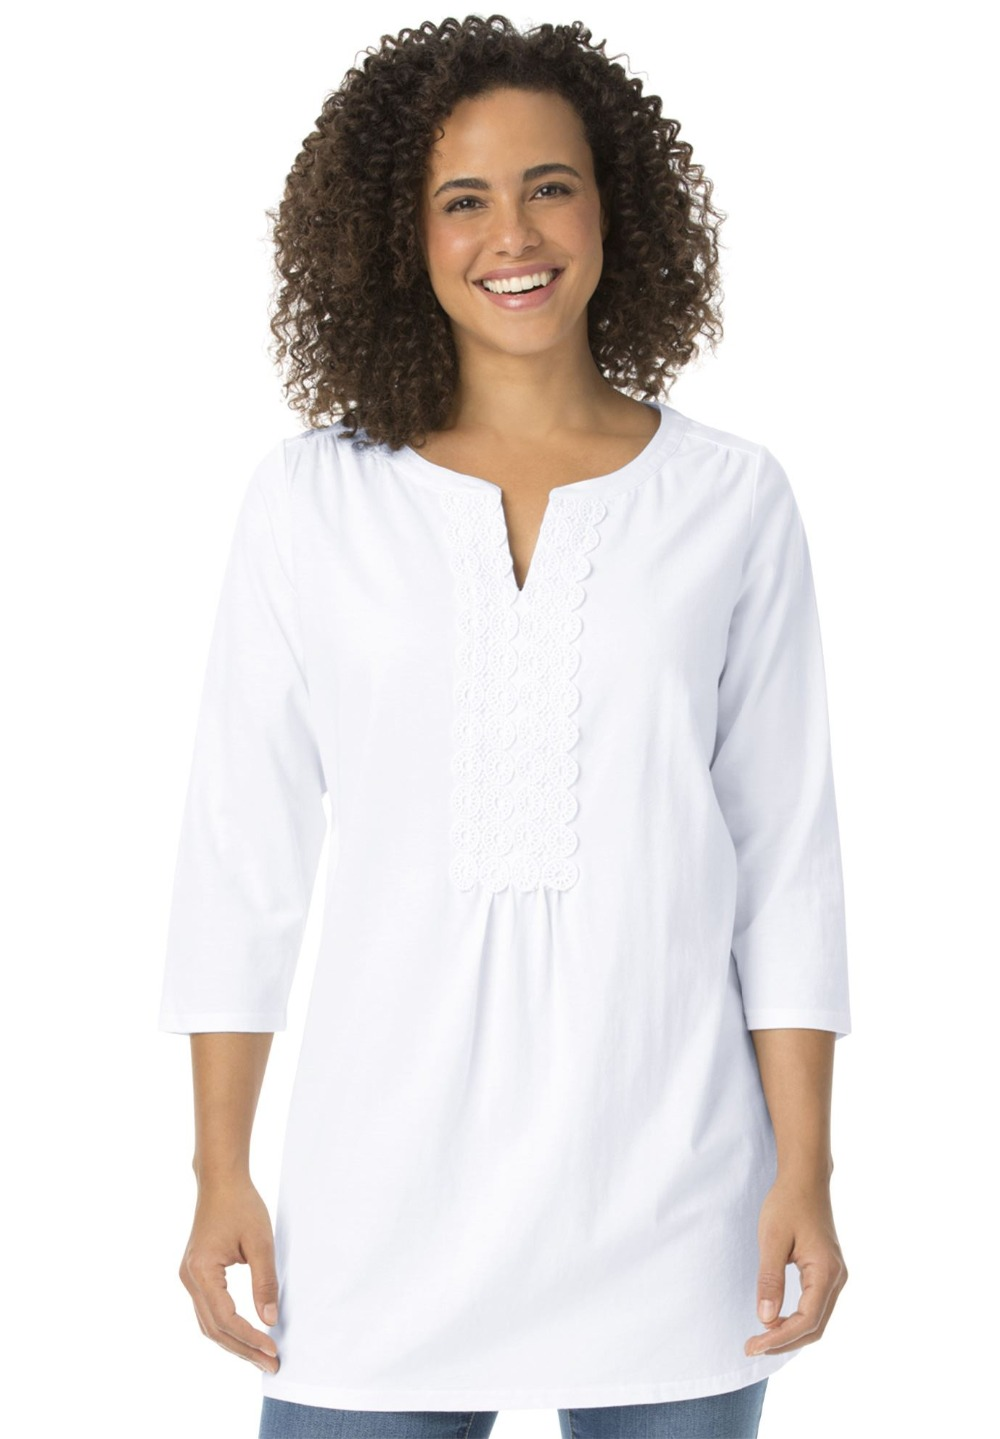 Shop our highly-edited collection of women's cotton tops and silk tops in tank, short-sleeve, long-sleeve, and tunic styles. Graceful woven cotton shirts and silk .